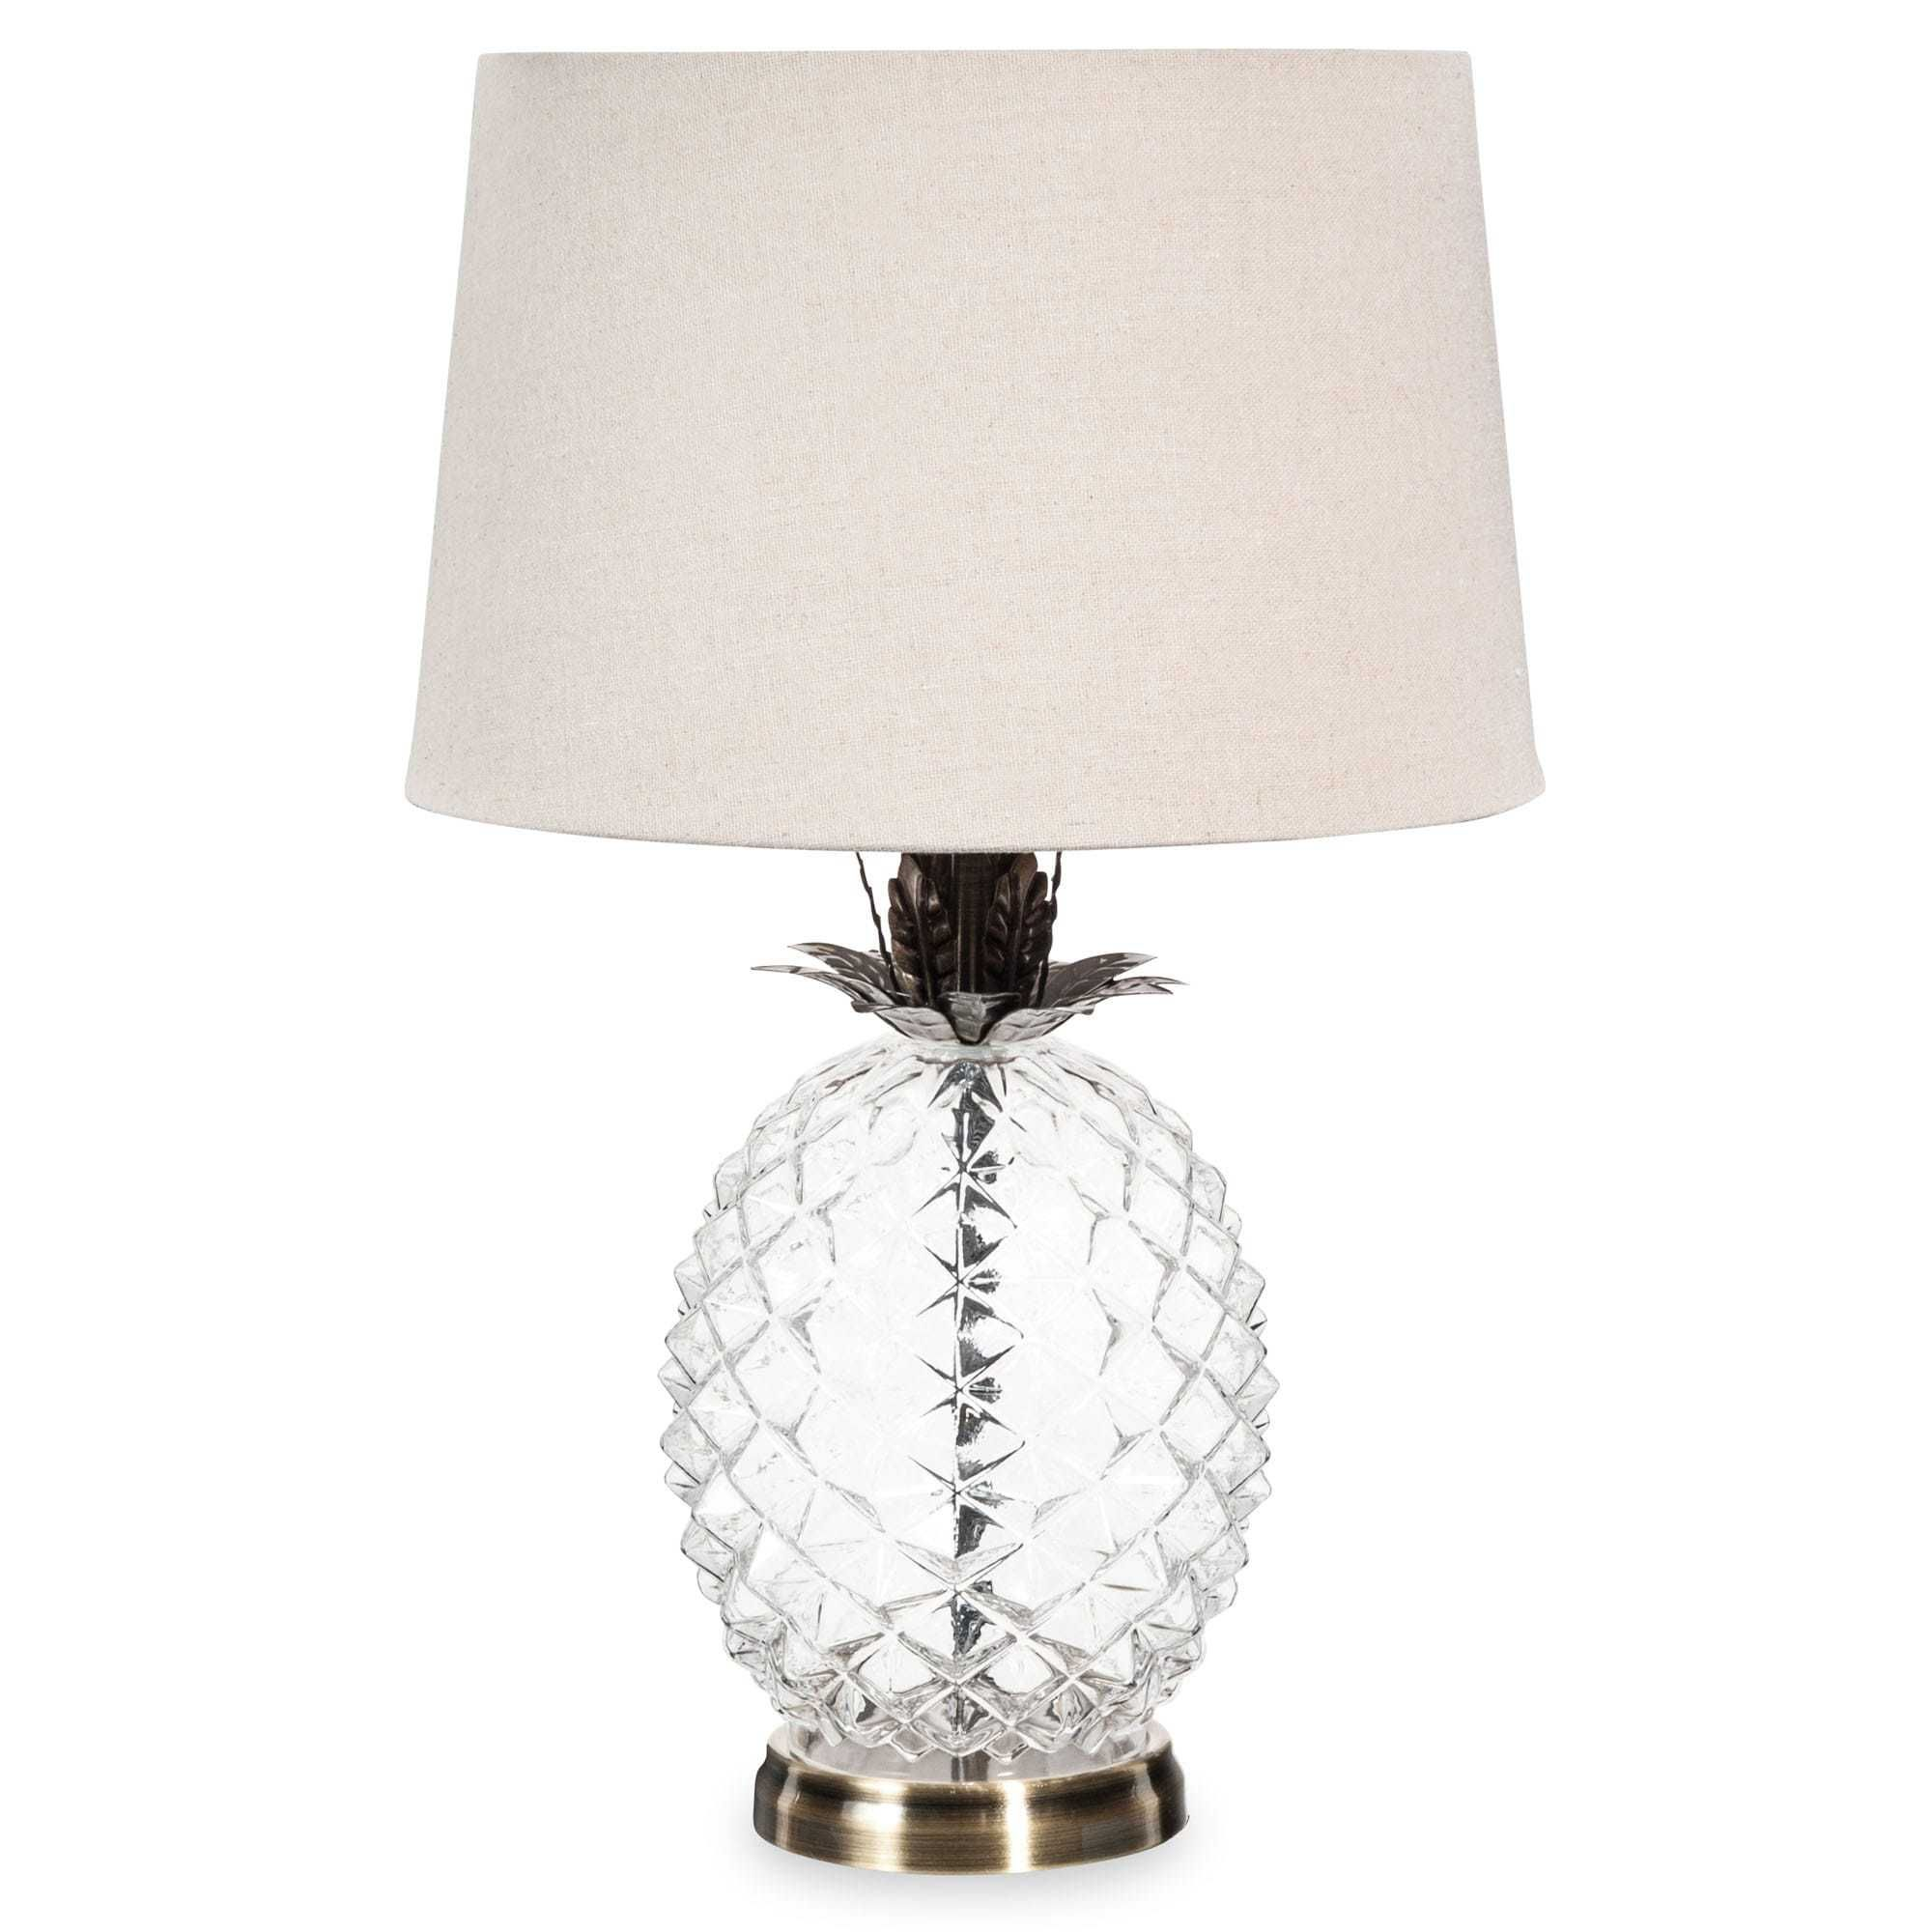 ananas lampe aus glas mit beigem lampenschirm pineapple lamp living spaces and bedrooms. Black Bedroom Furniture Sets. Home Design Ideas